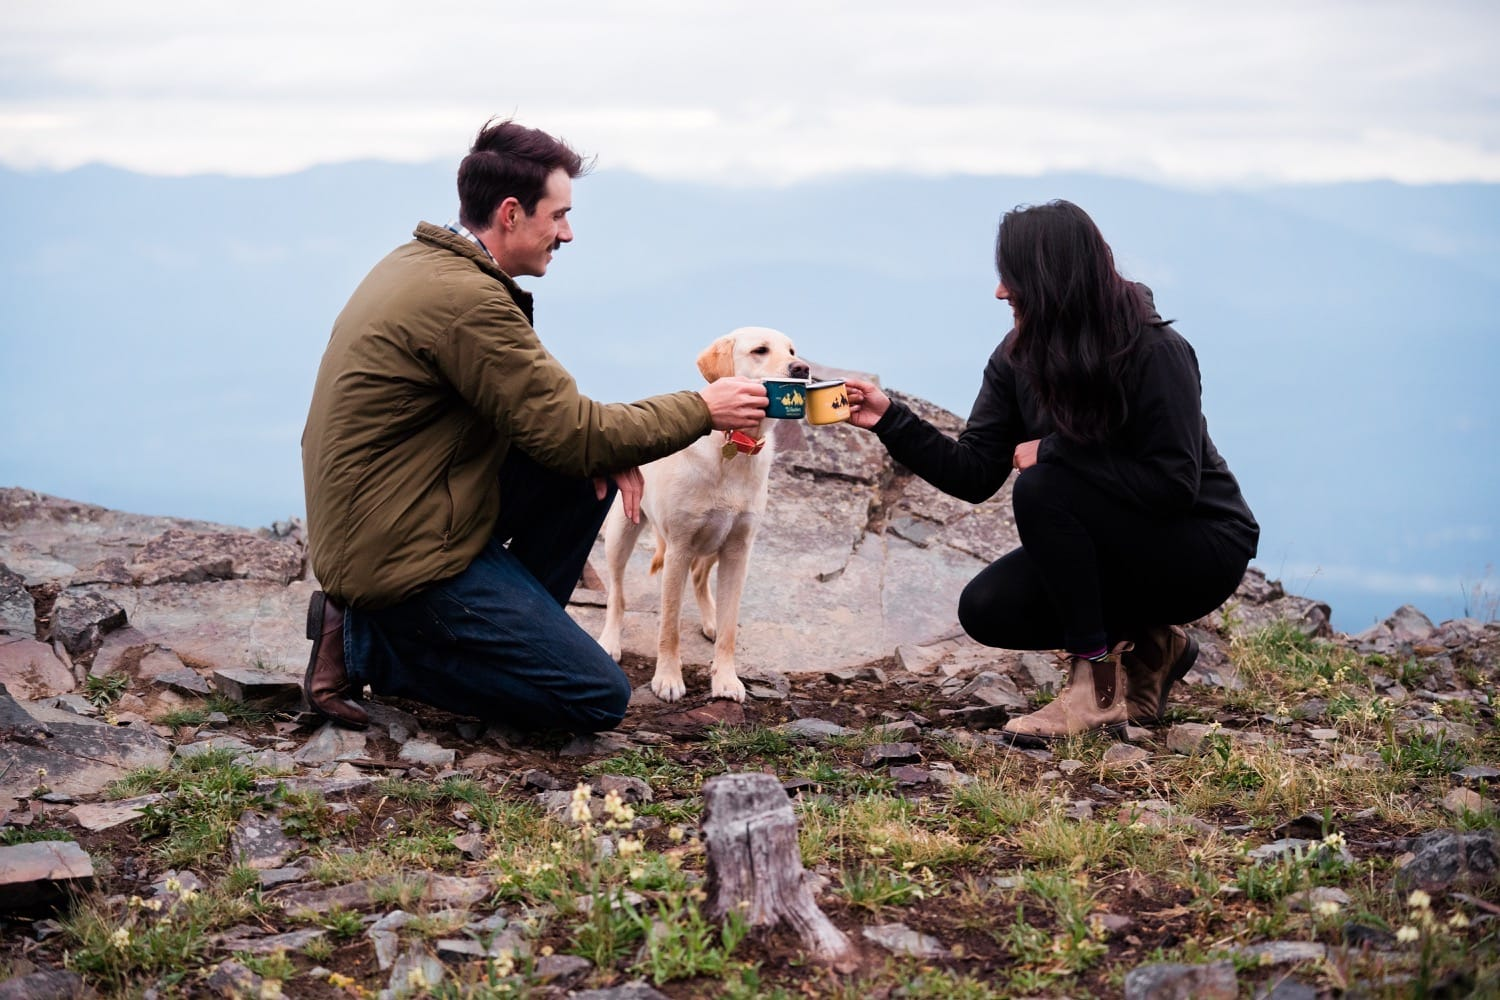 An adventurous couple in hiking clothes cheers each other with camping mugs full of champagne as their dog sniffs the mugs.